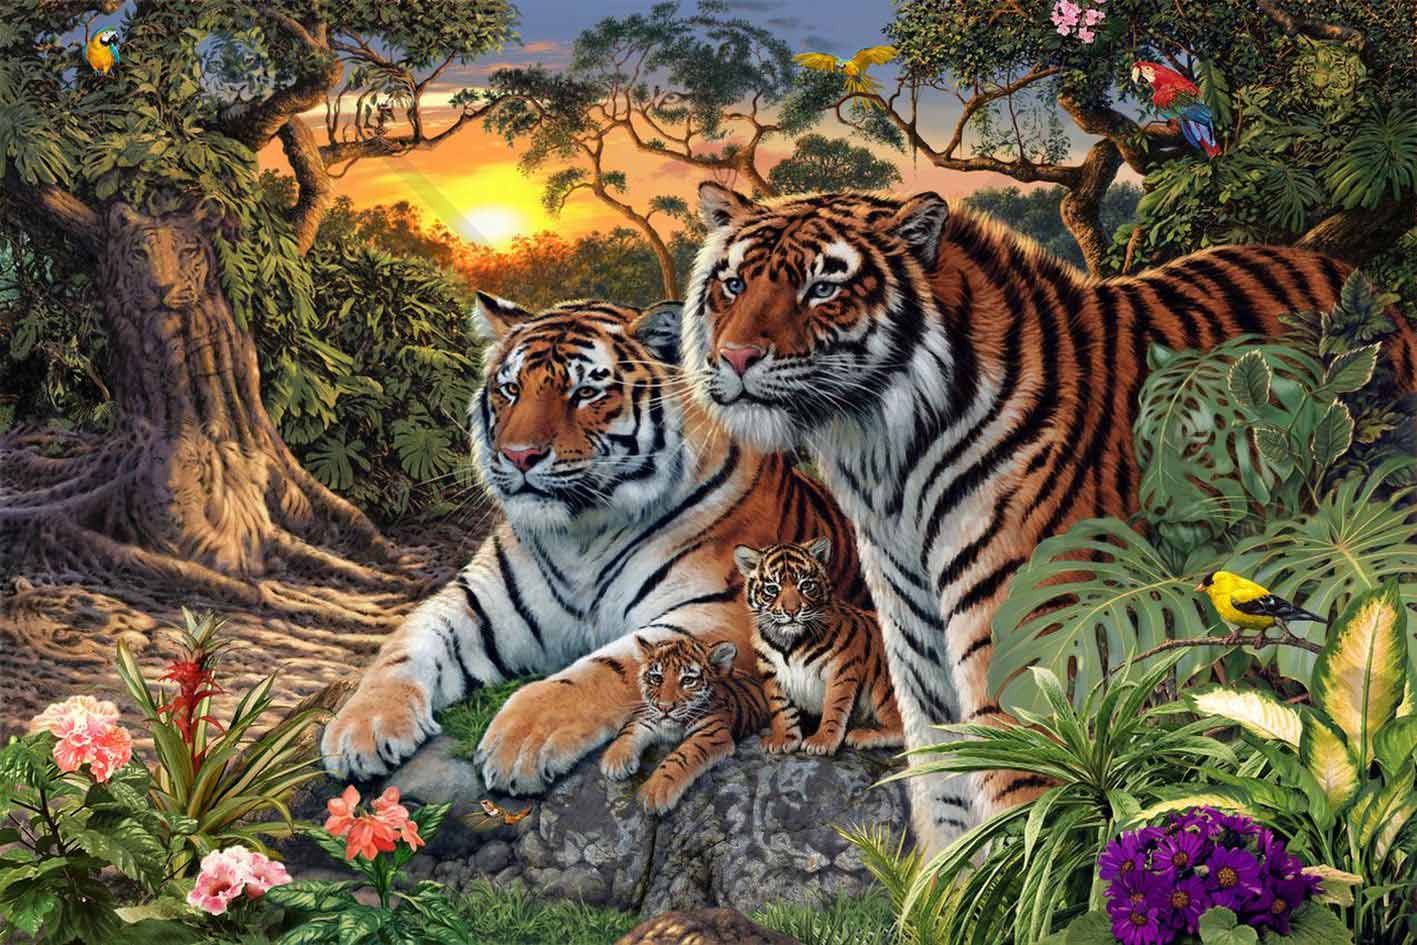 How Many Tigers Can You See In This Picture ?